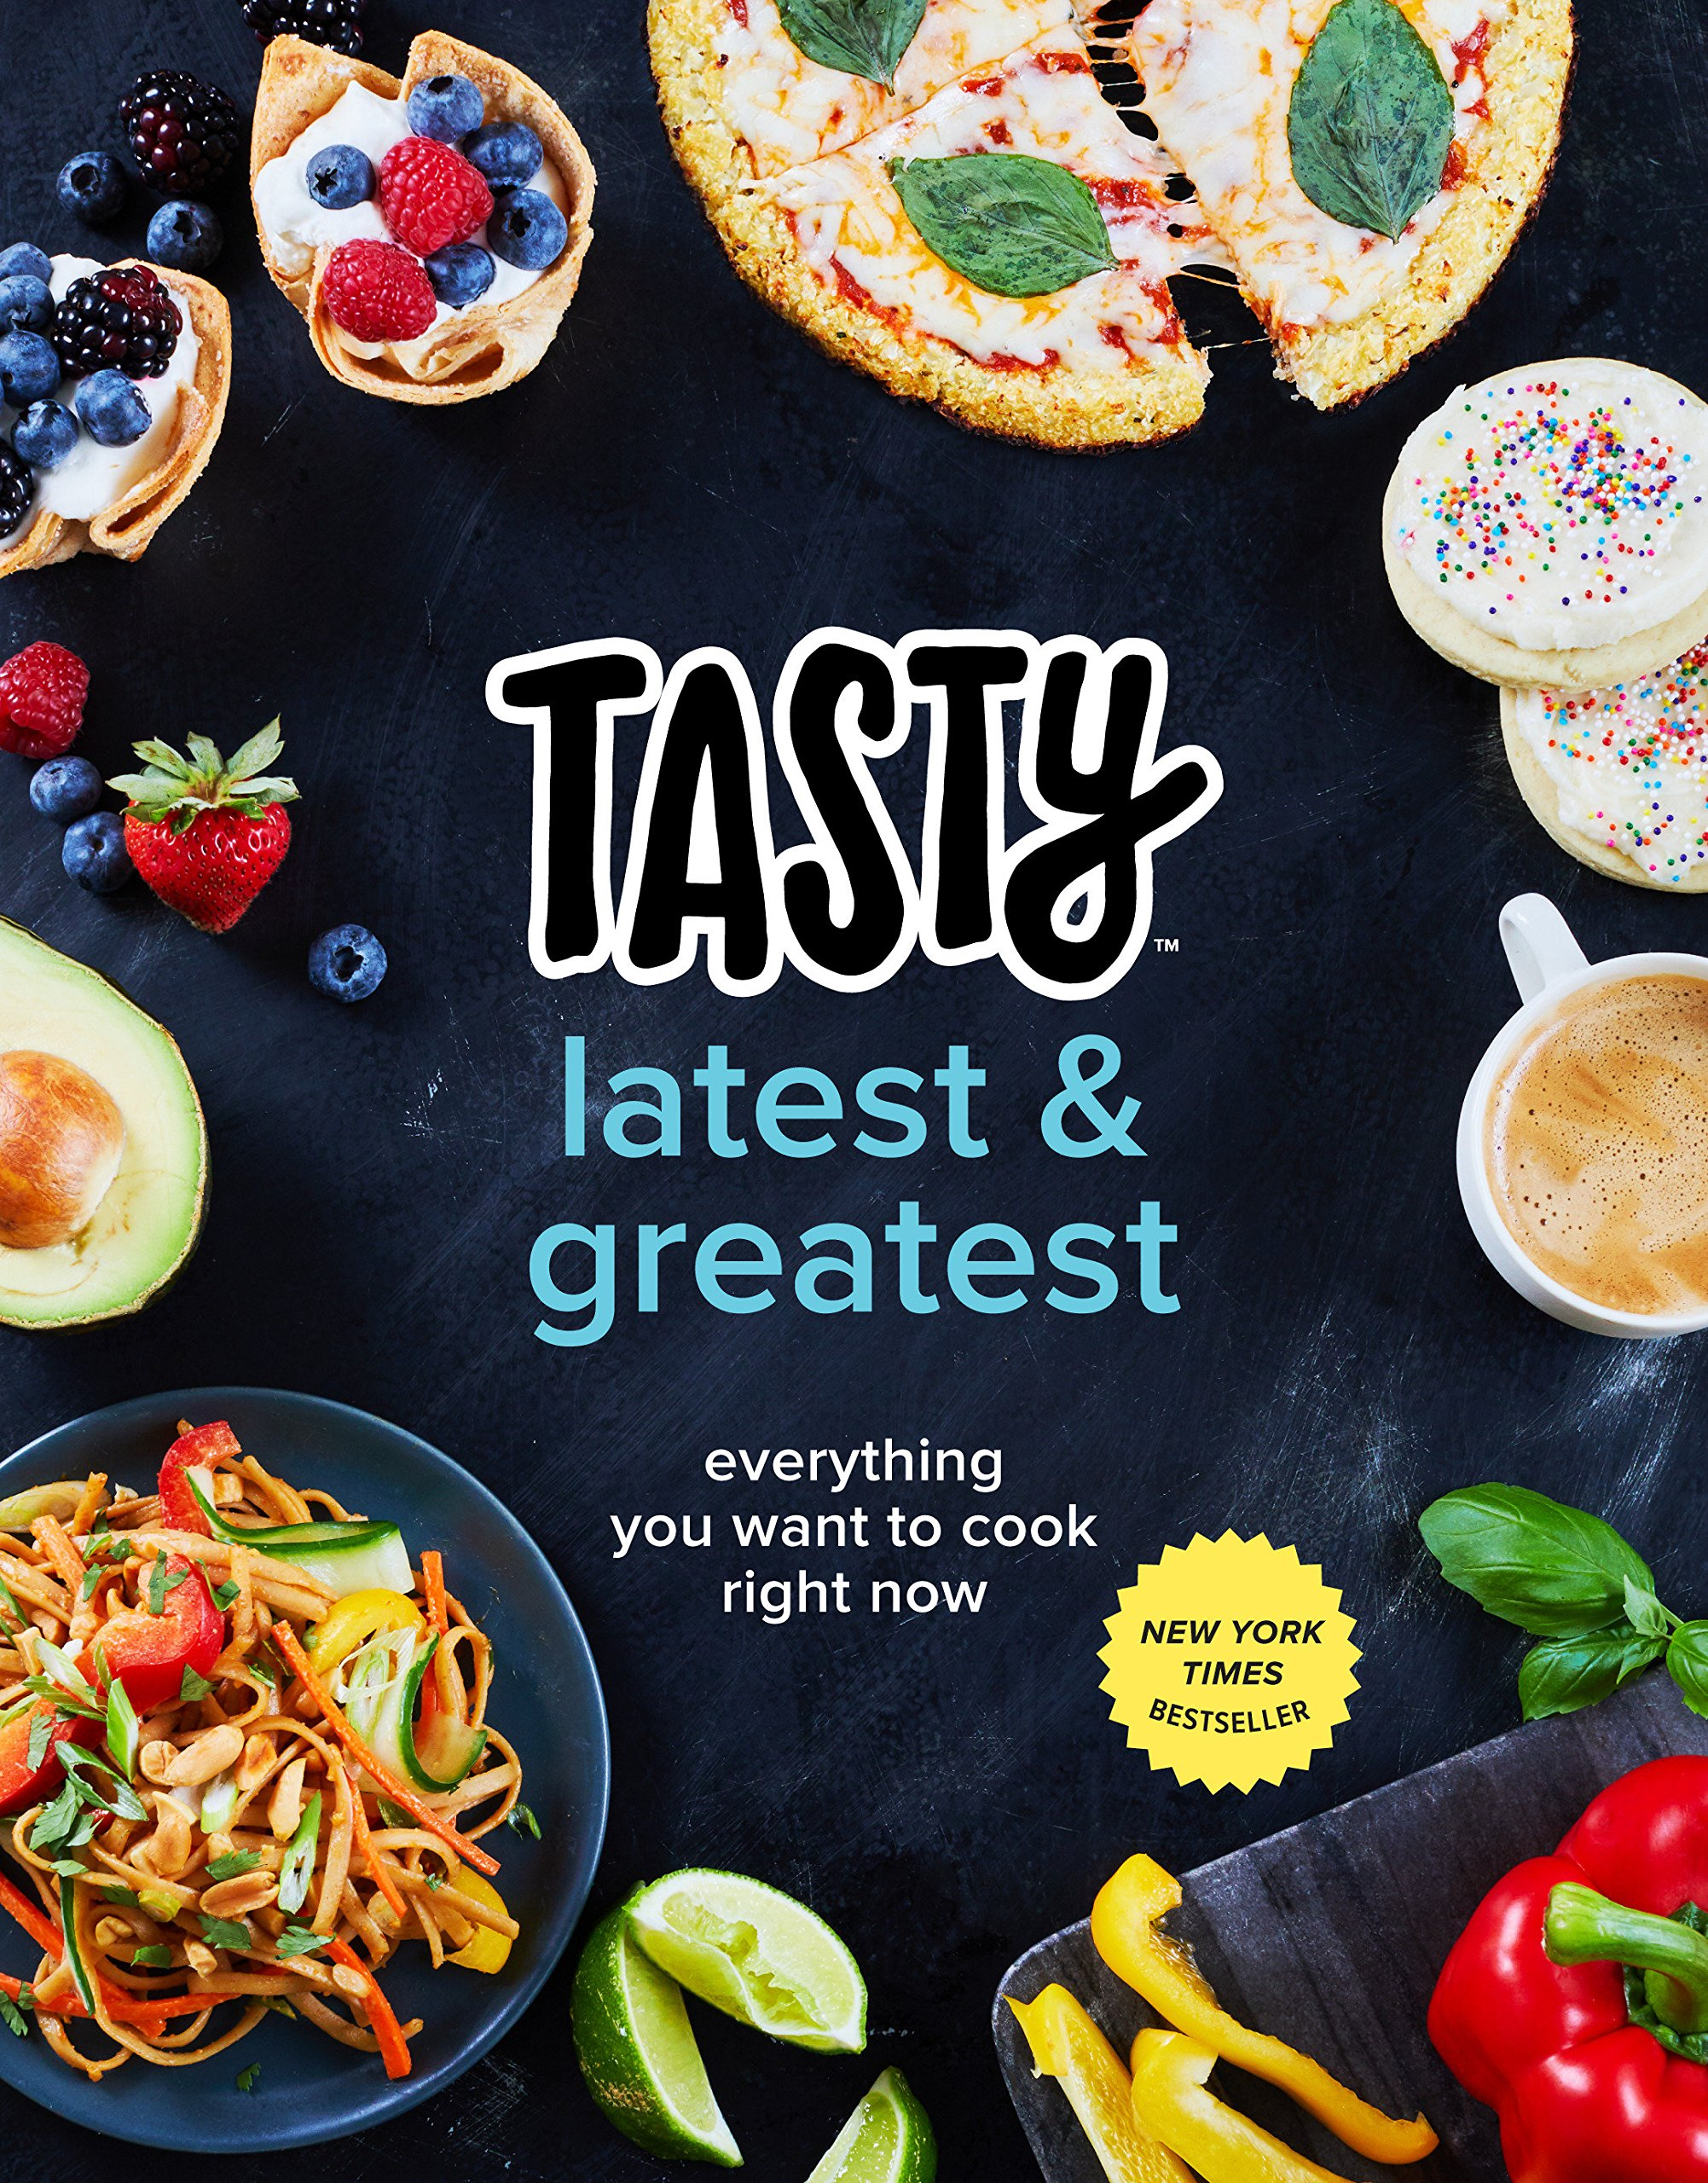 Everything will be great: video recipes from the program are included in the new section 54